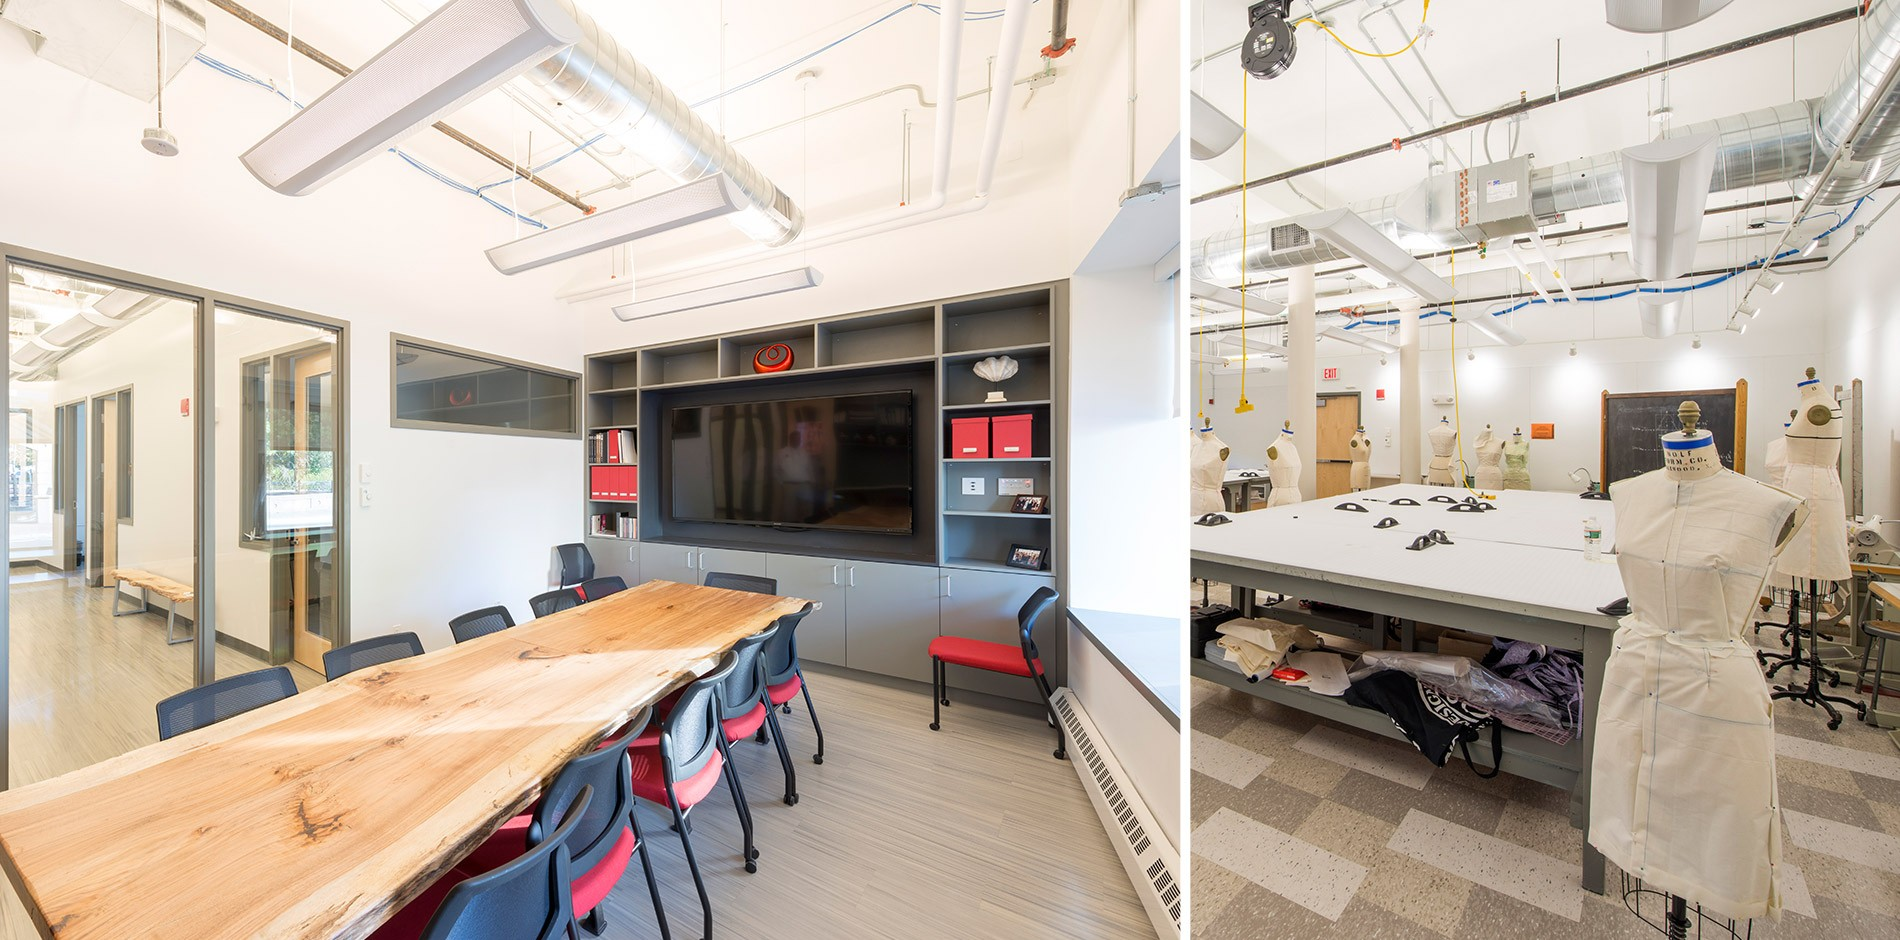 Shawmut Recently Completed The Multimillion Dollar Renovation Of 189 C Street Providence Ri New Home To Rhode Island School Design S Risd Arel